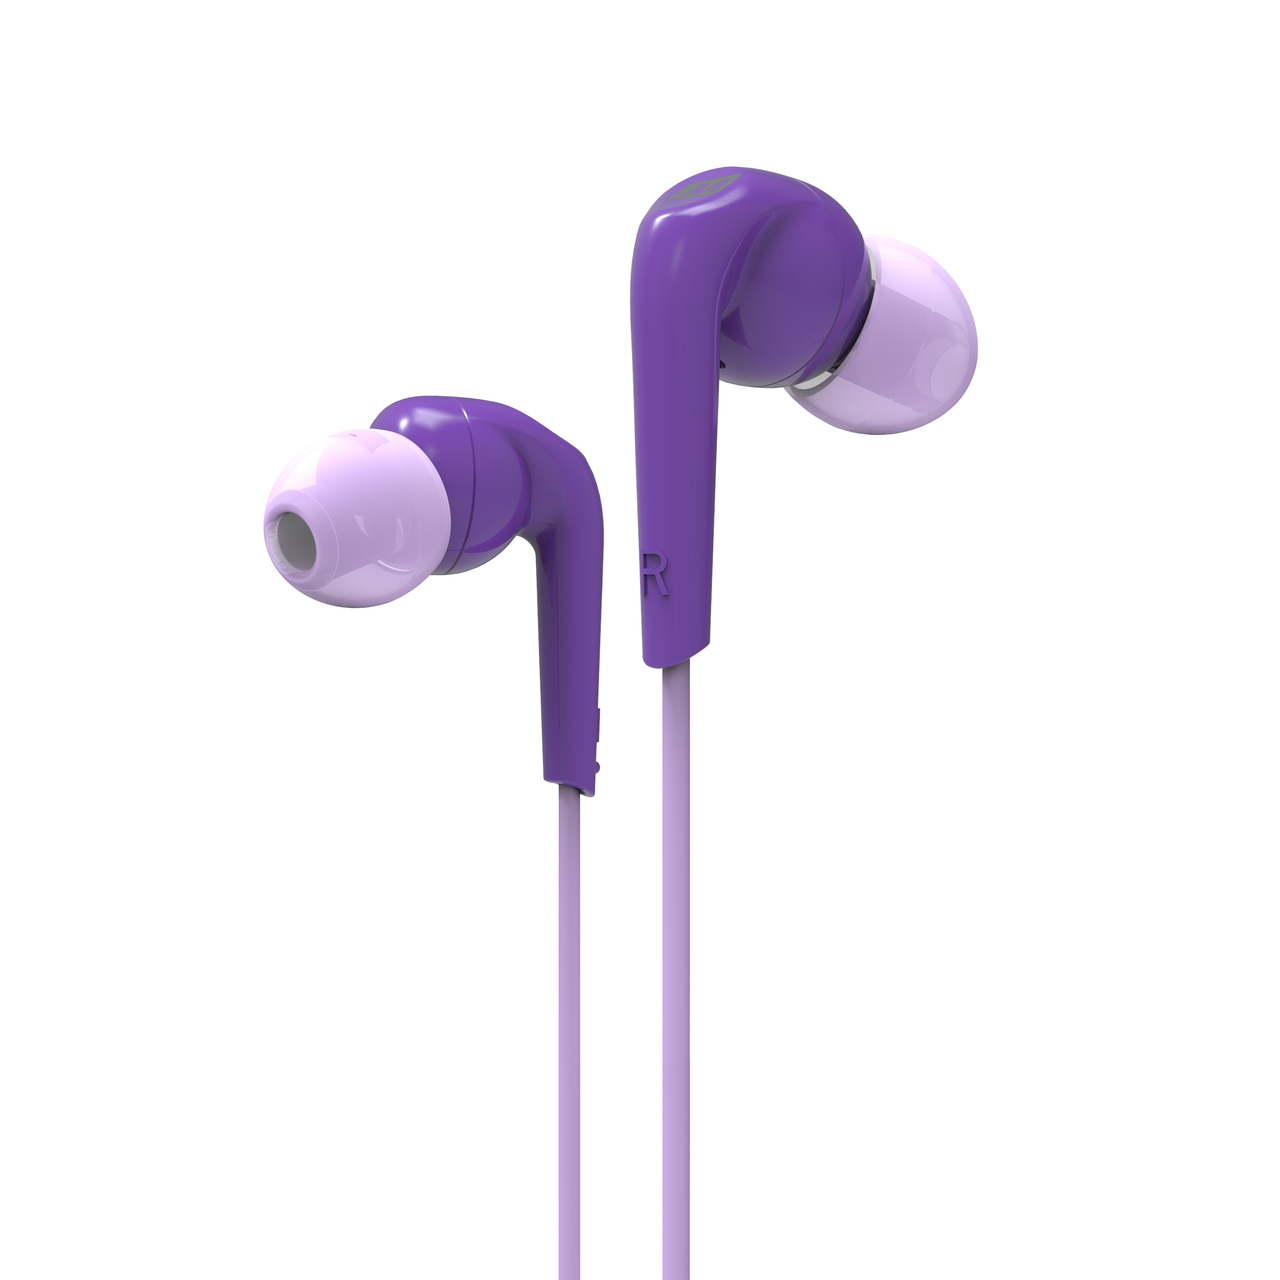 MEE Audio RX18 Kolor: Purpurowy